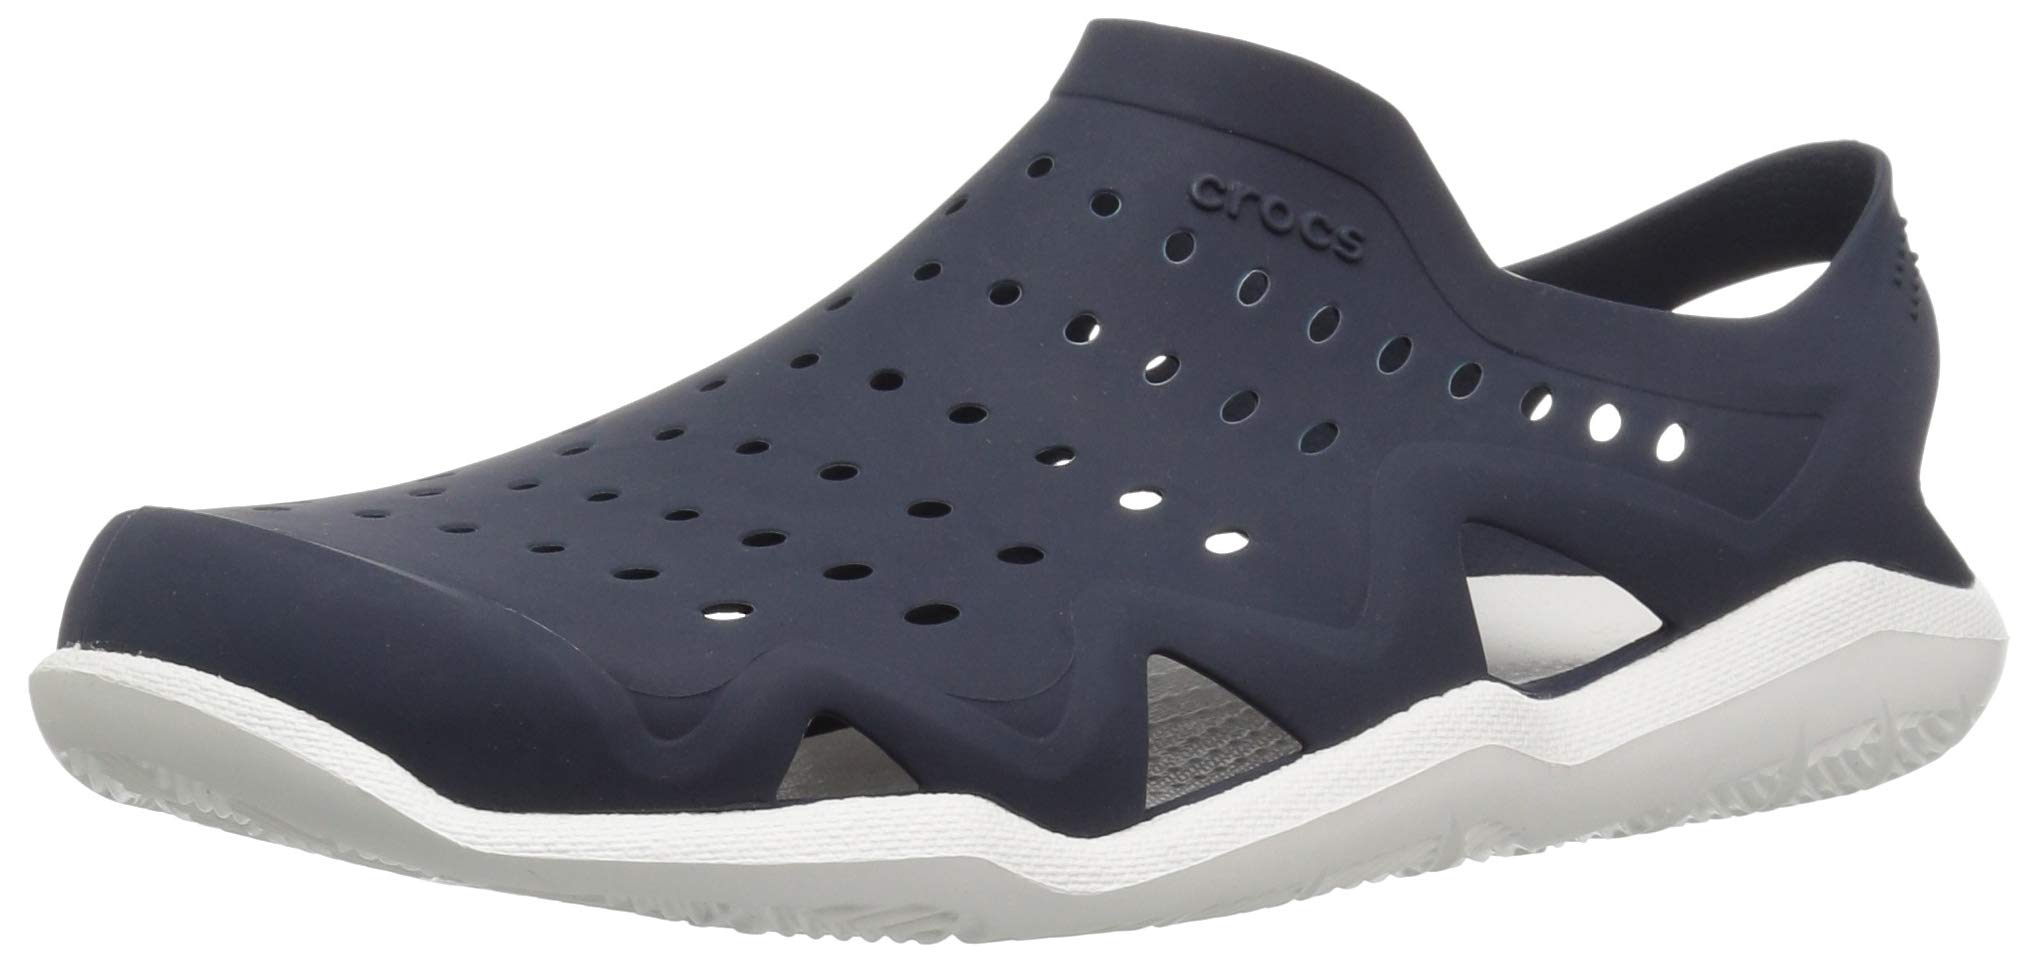 Crocs Men's Swiftwater Wave Sandal Sport, Navy/White, 4 M US by Crocs